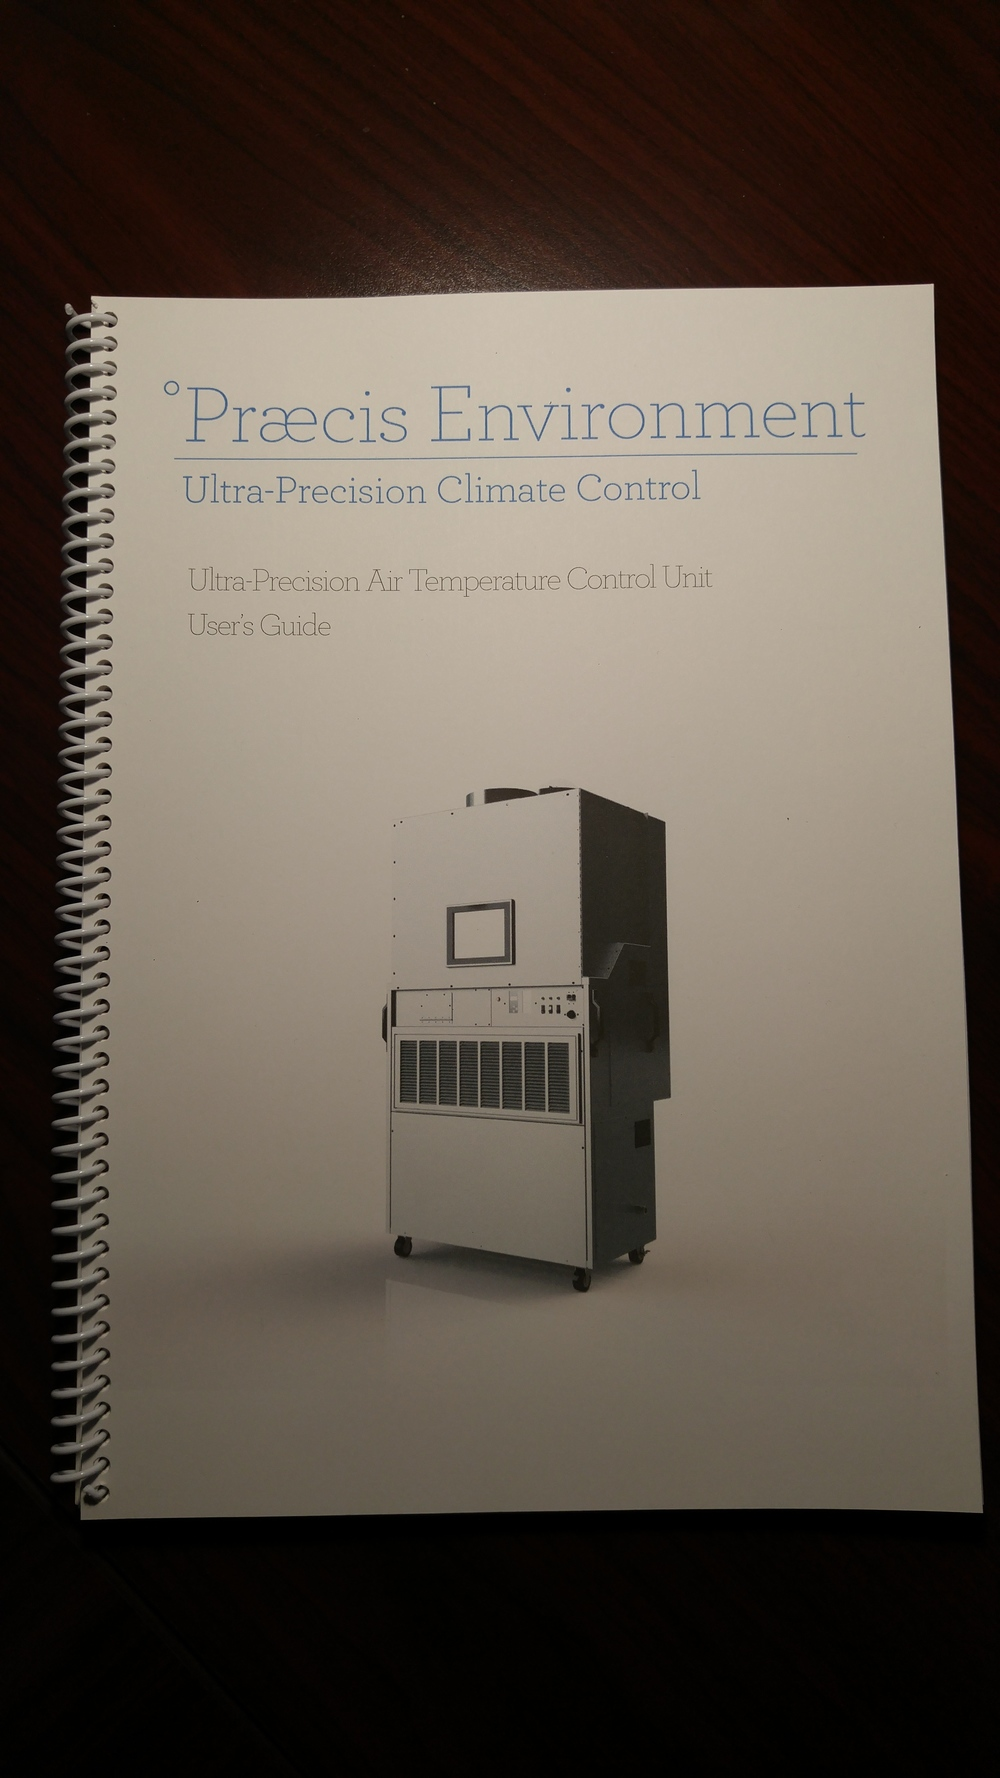 Praecis Ultra Precision Climate Control Manual